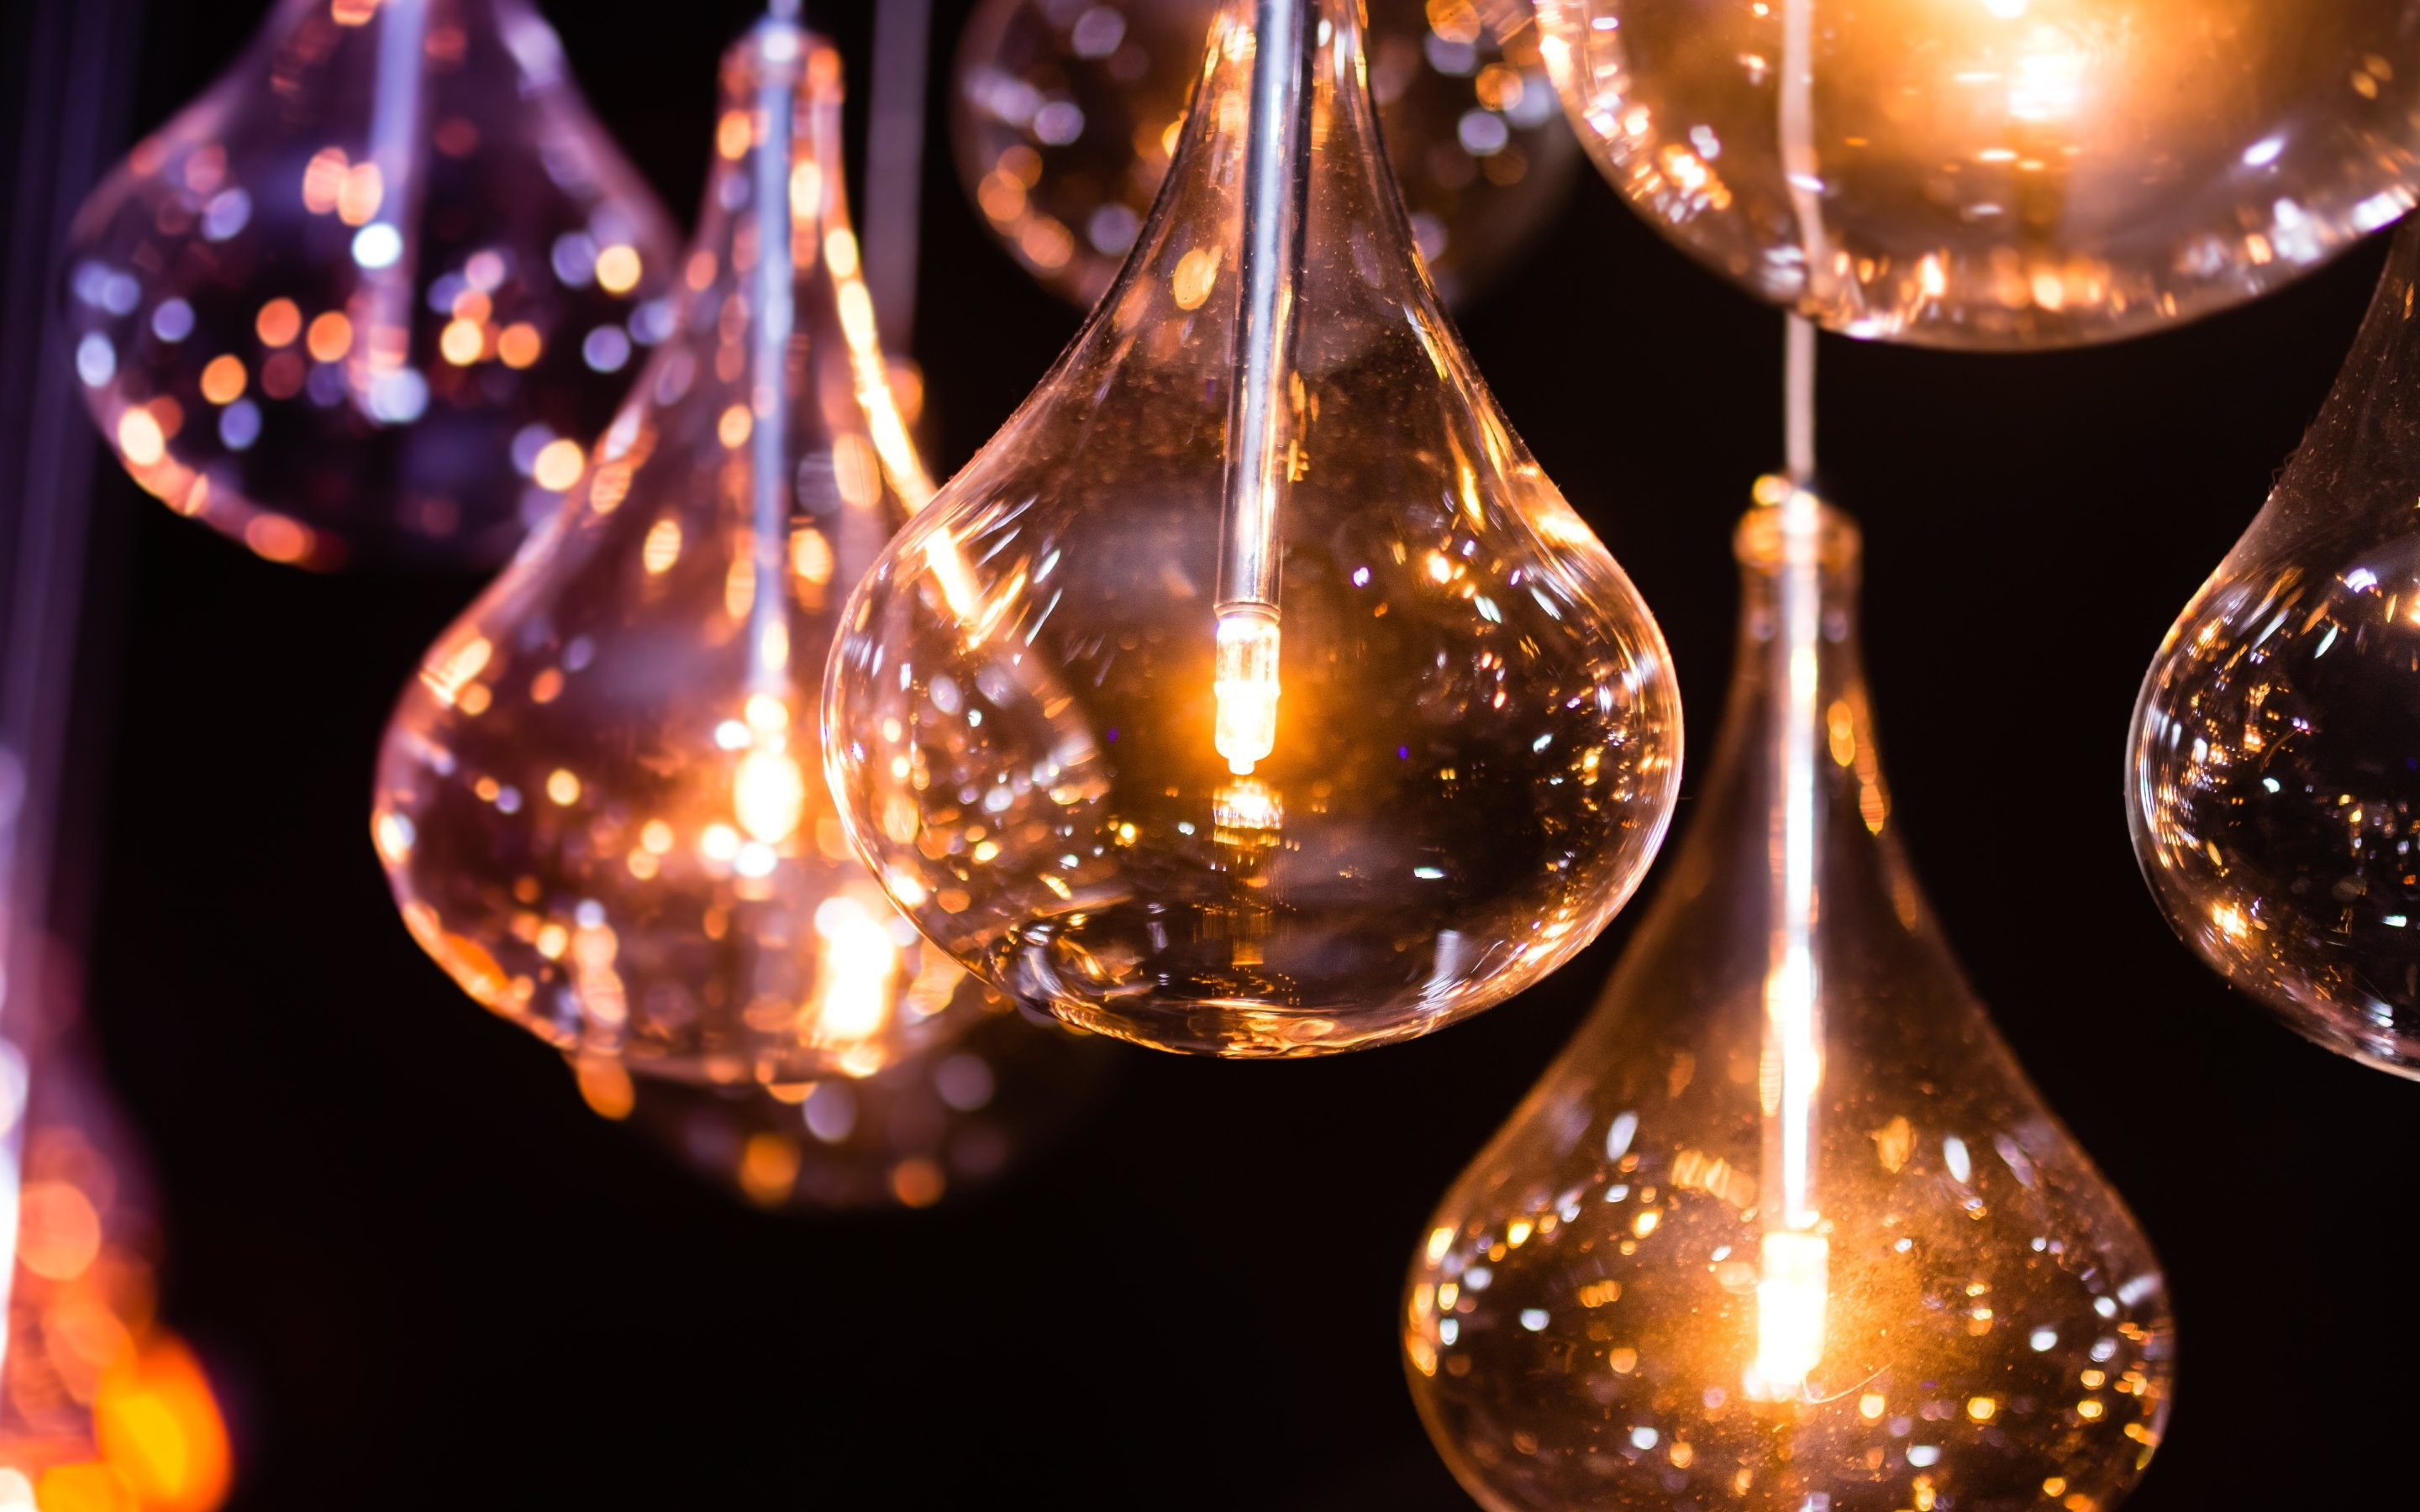 2880x1800 4K HD Wallpaper: Light Bulbs. The Miracle of Electricity